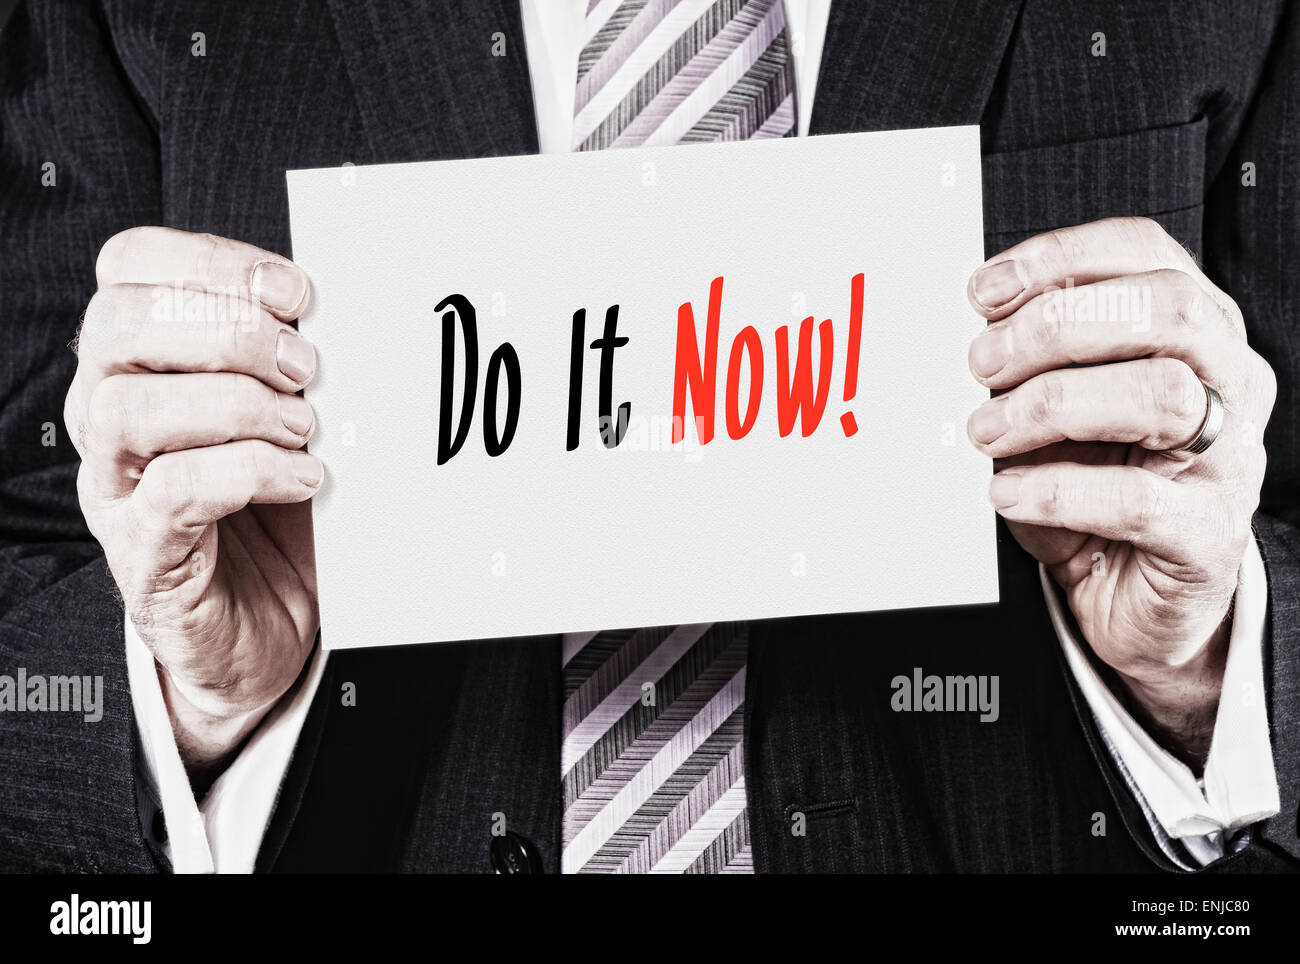 A businessman holding a business card with the words,  Do It Now, written on it. - Stock Image